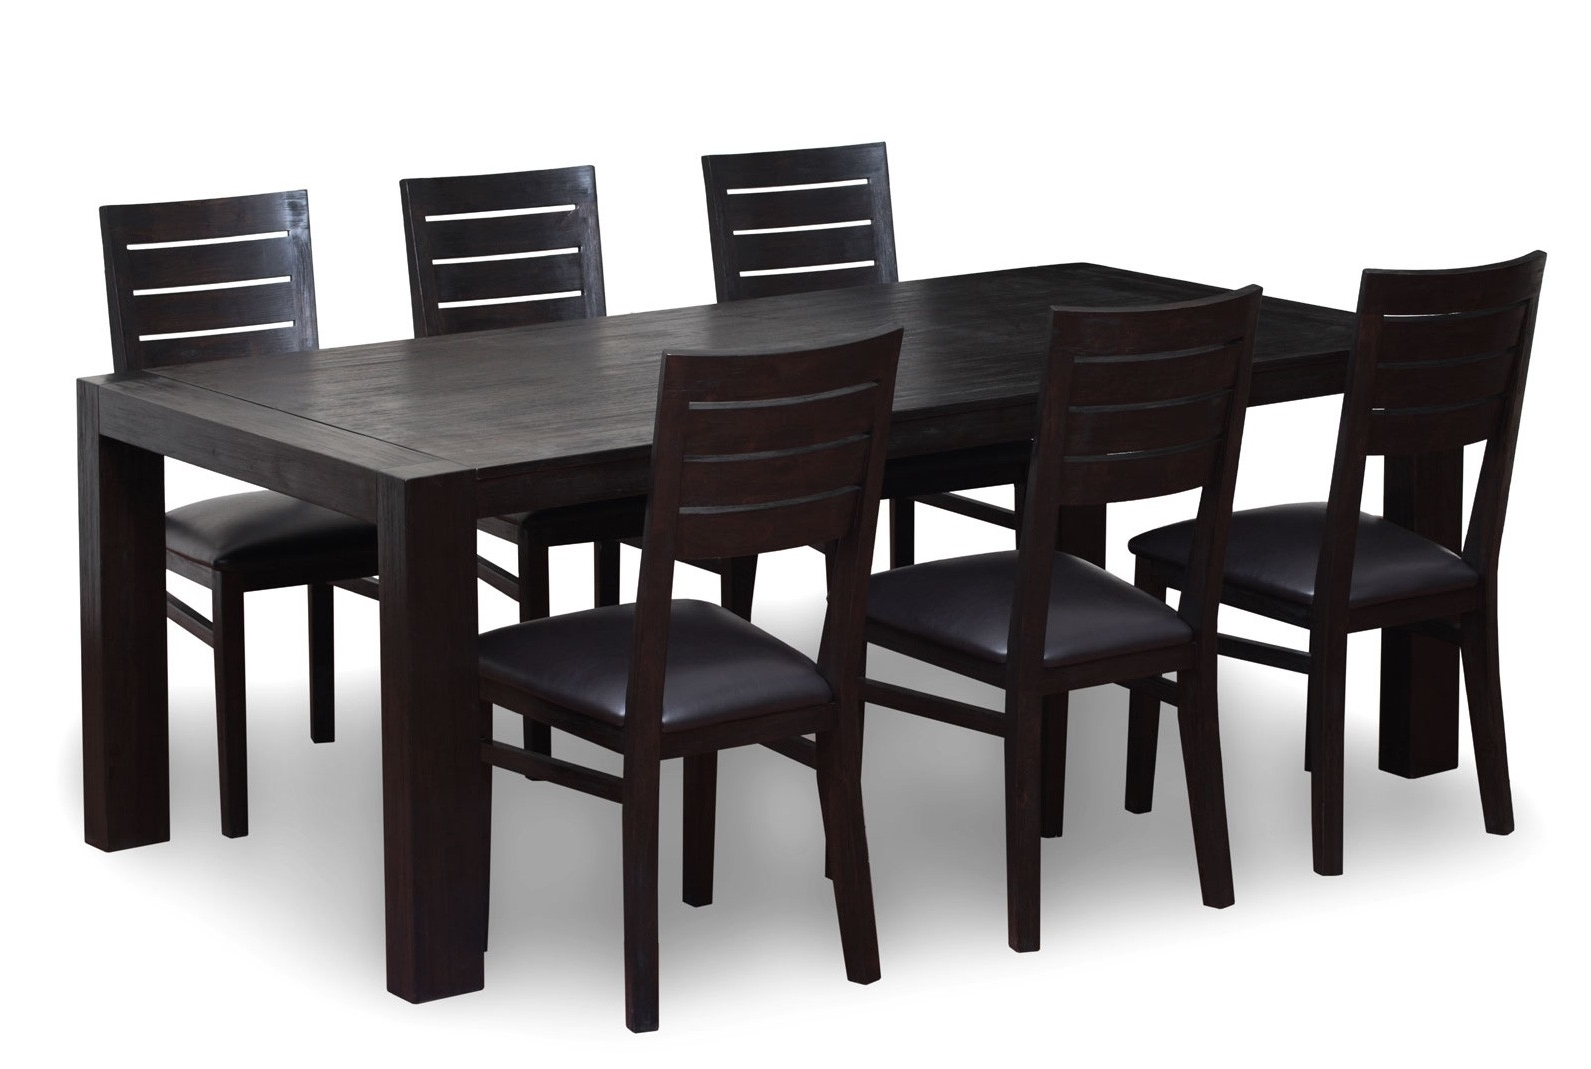 6 Seater Wooden Dining Table Set – Antique Ebony Intended For Most Current 6 Seater Dining Tables (Gallery 4 of 25)